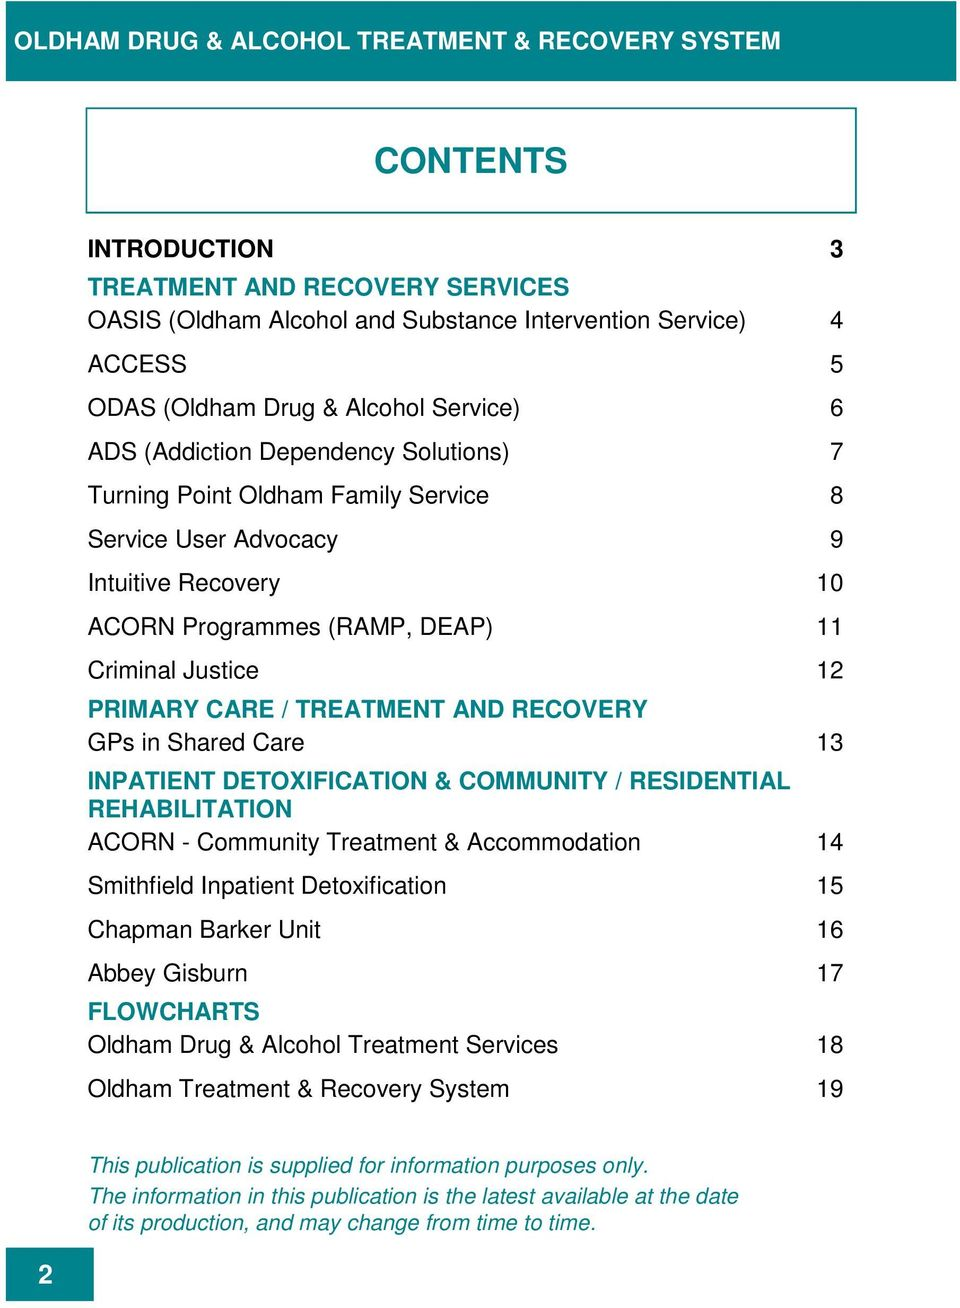 PRIMARY CARE / TREATMENT AND RECOVERY GPs in Shared Care 13 INPATIENT DETOXIFICATION & COMMUNITY / RESIDENTIAL REHABILITATION ACORN - Community Treatment & Accommodation 14 Smithfield Inpatient